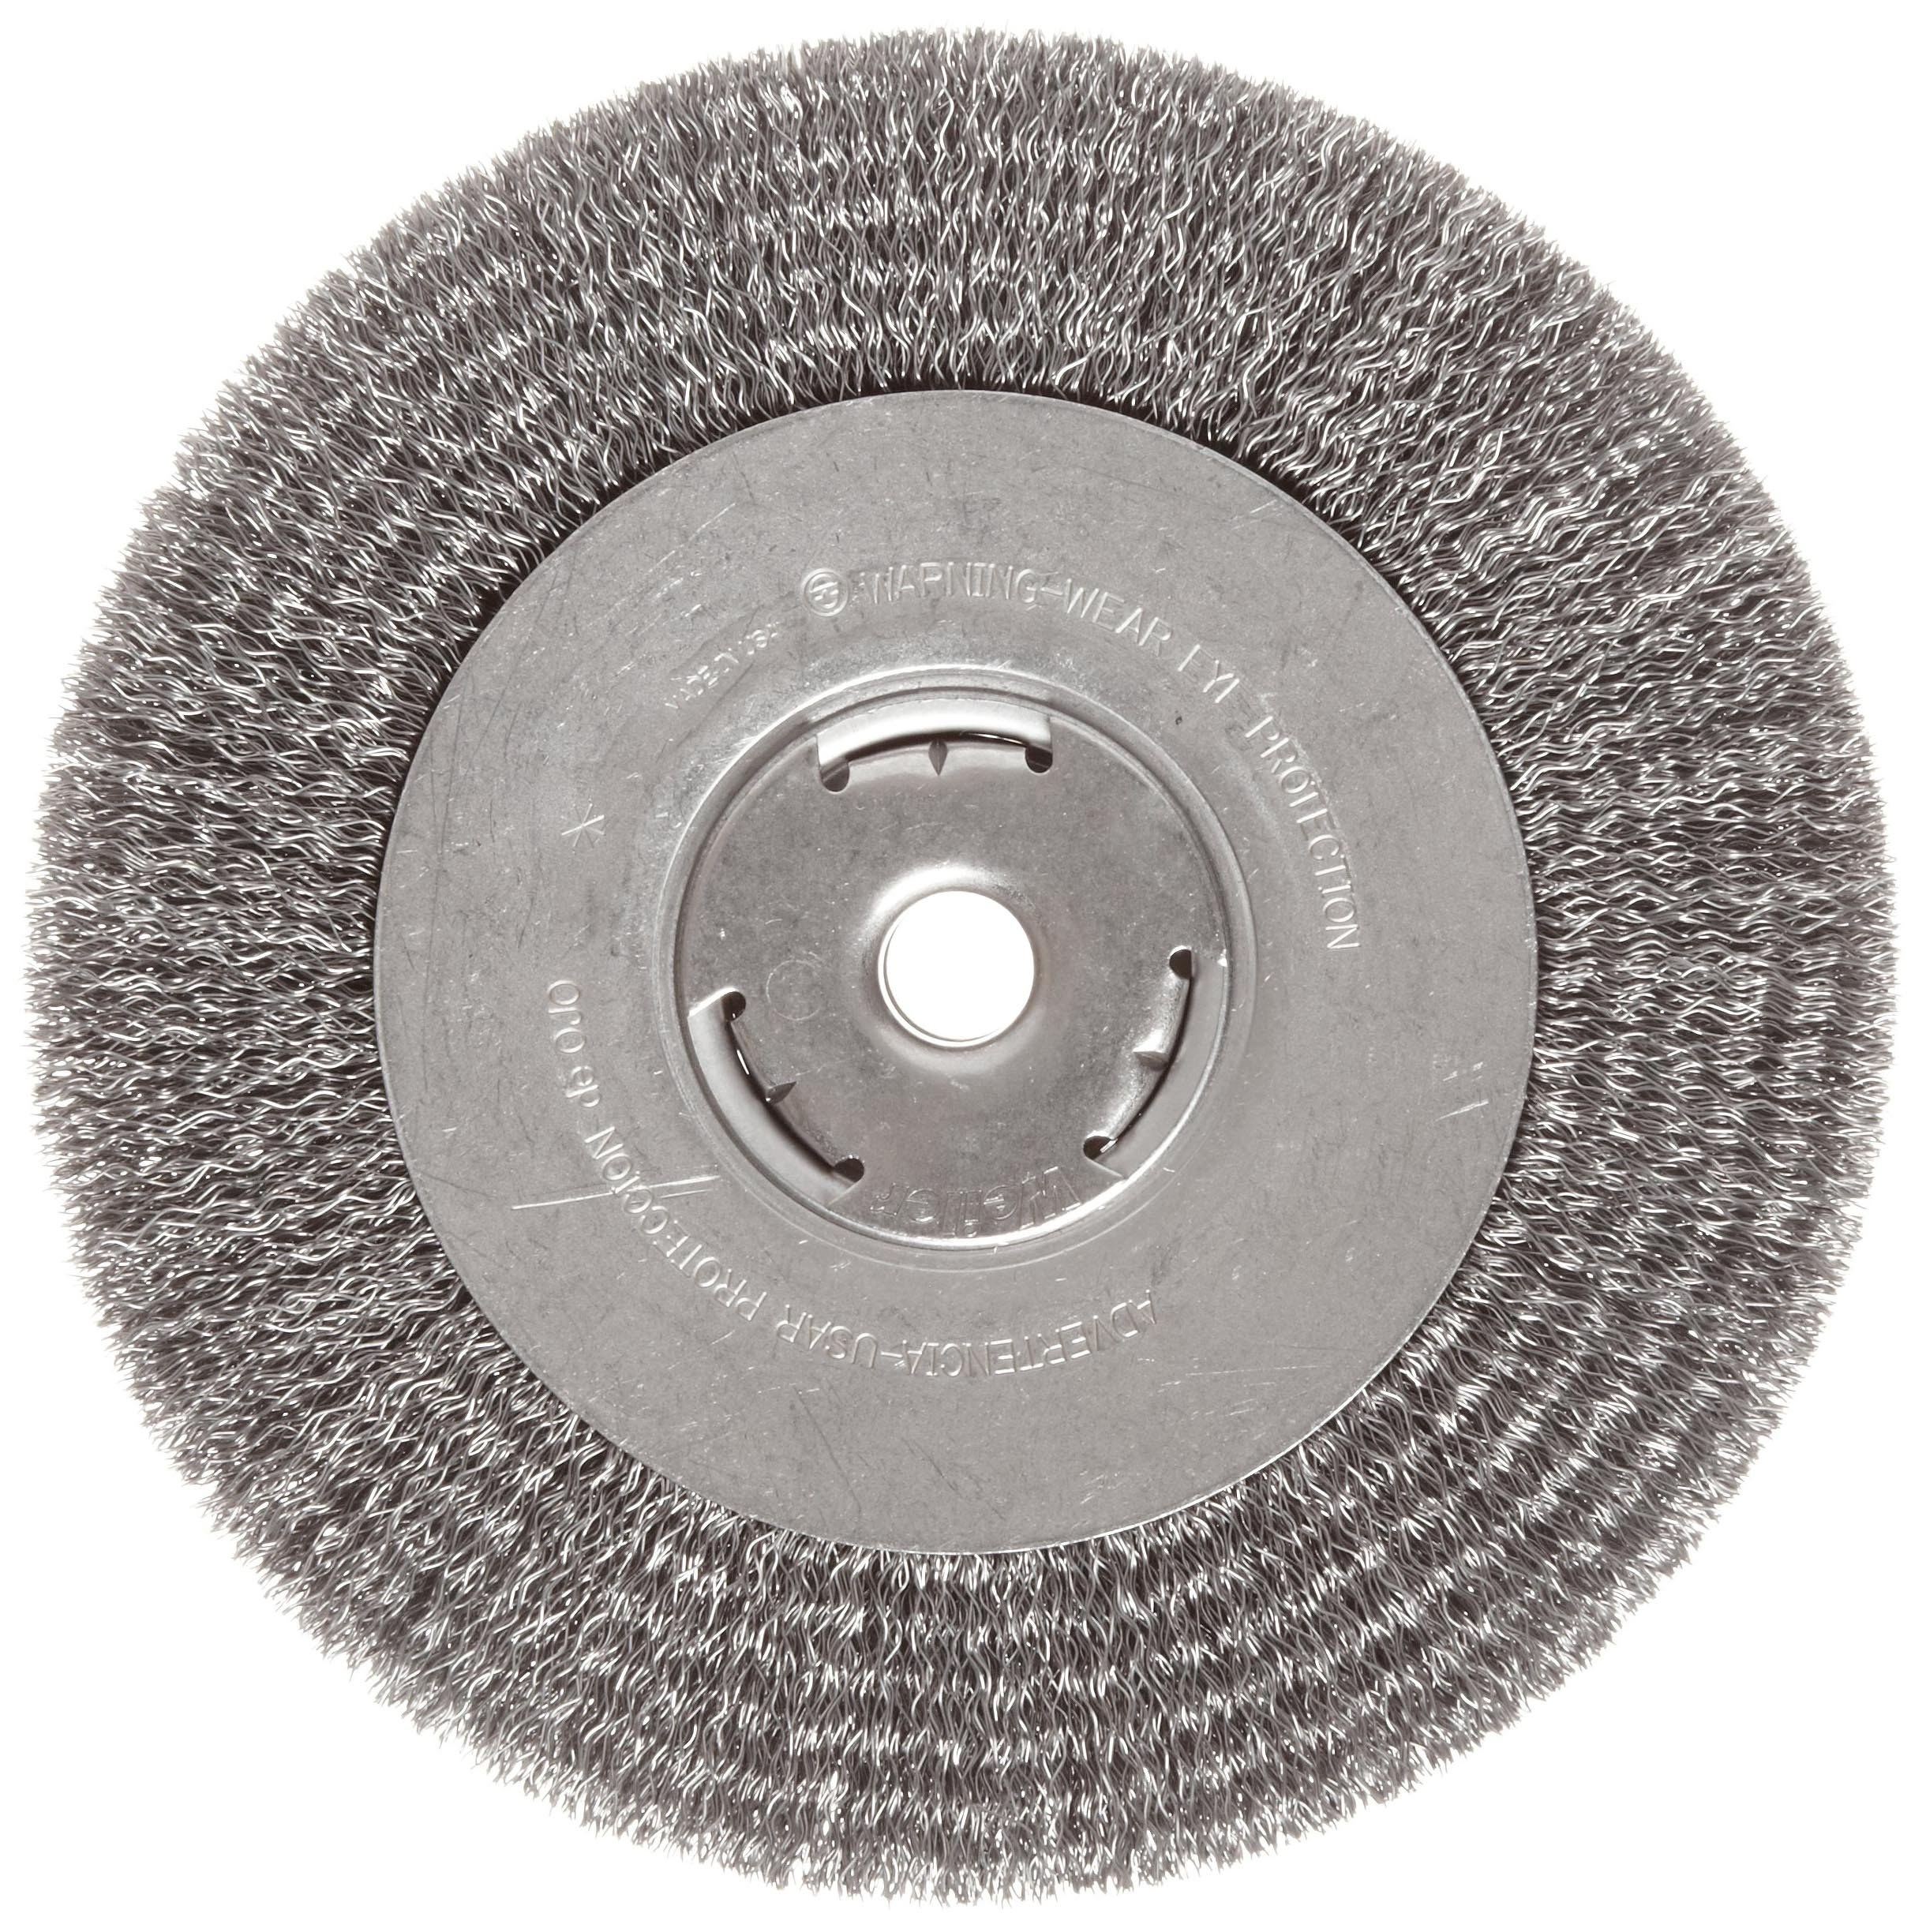 Weiler Vortec Pro Wide Face Wire Wheel Brush, Round Hole, Carbon Steel, Crimped Wire, 8'' Diameter, 0.014'' Wire Diameter, 5/8'' Arbor, 1-3/8'' Bristle Length, 1'' Brush Face Width, 6000 rpm by Weiler